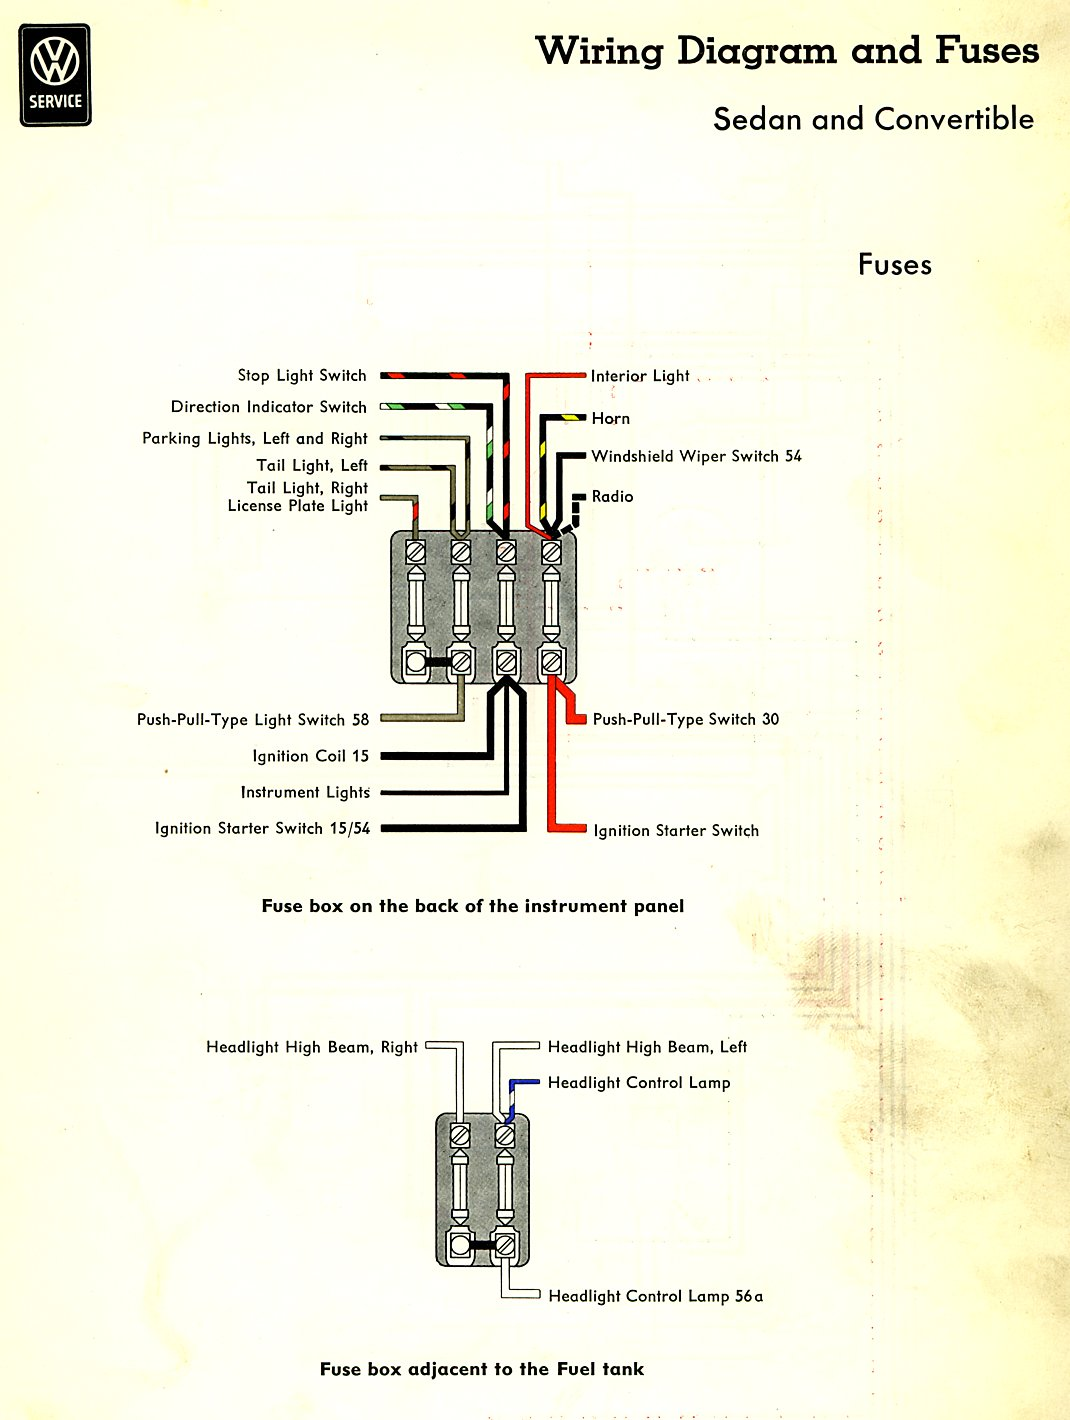 bug_58_fuses thesamba com type 1 wiring diagrams 1984 fj40 fuse box diagram at n-0.co